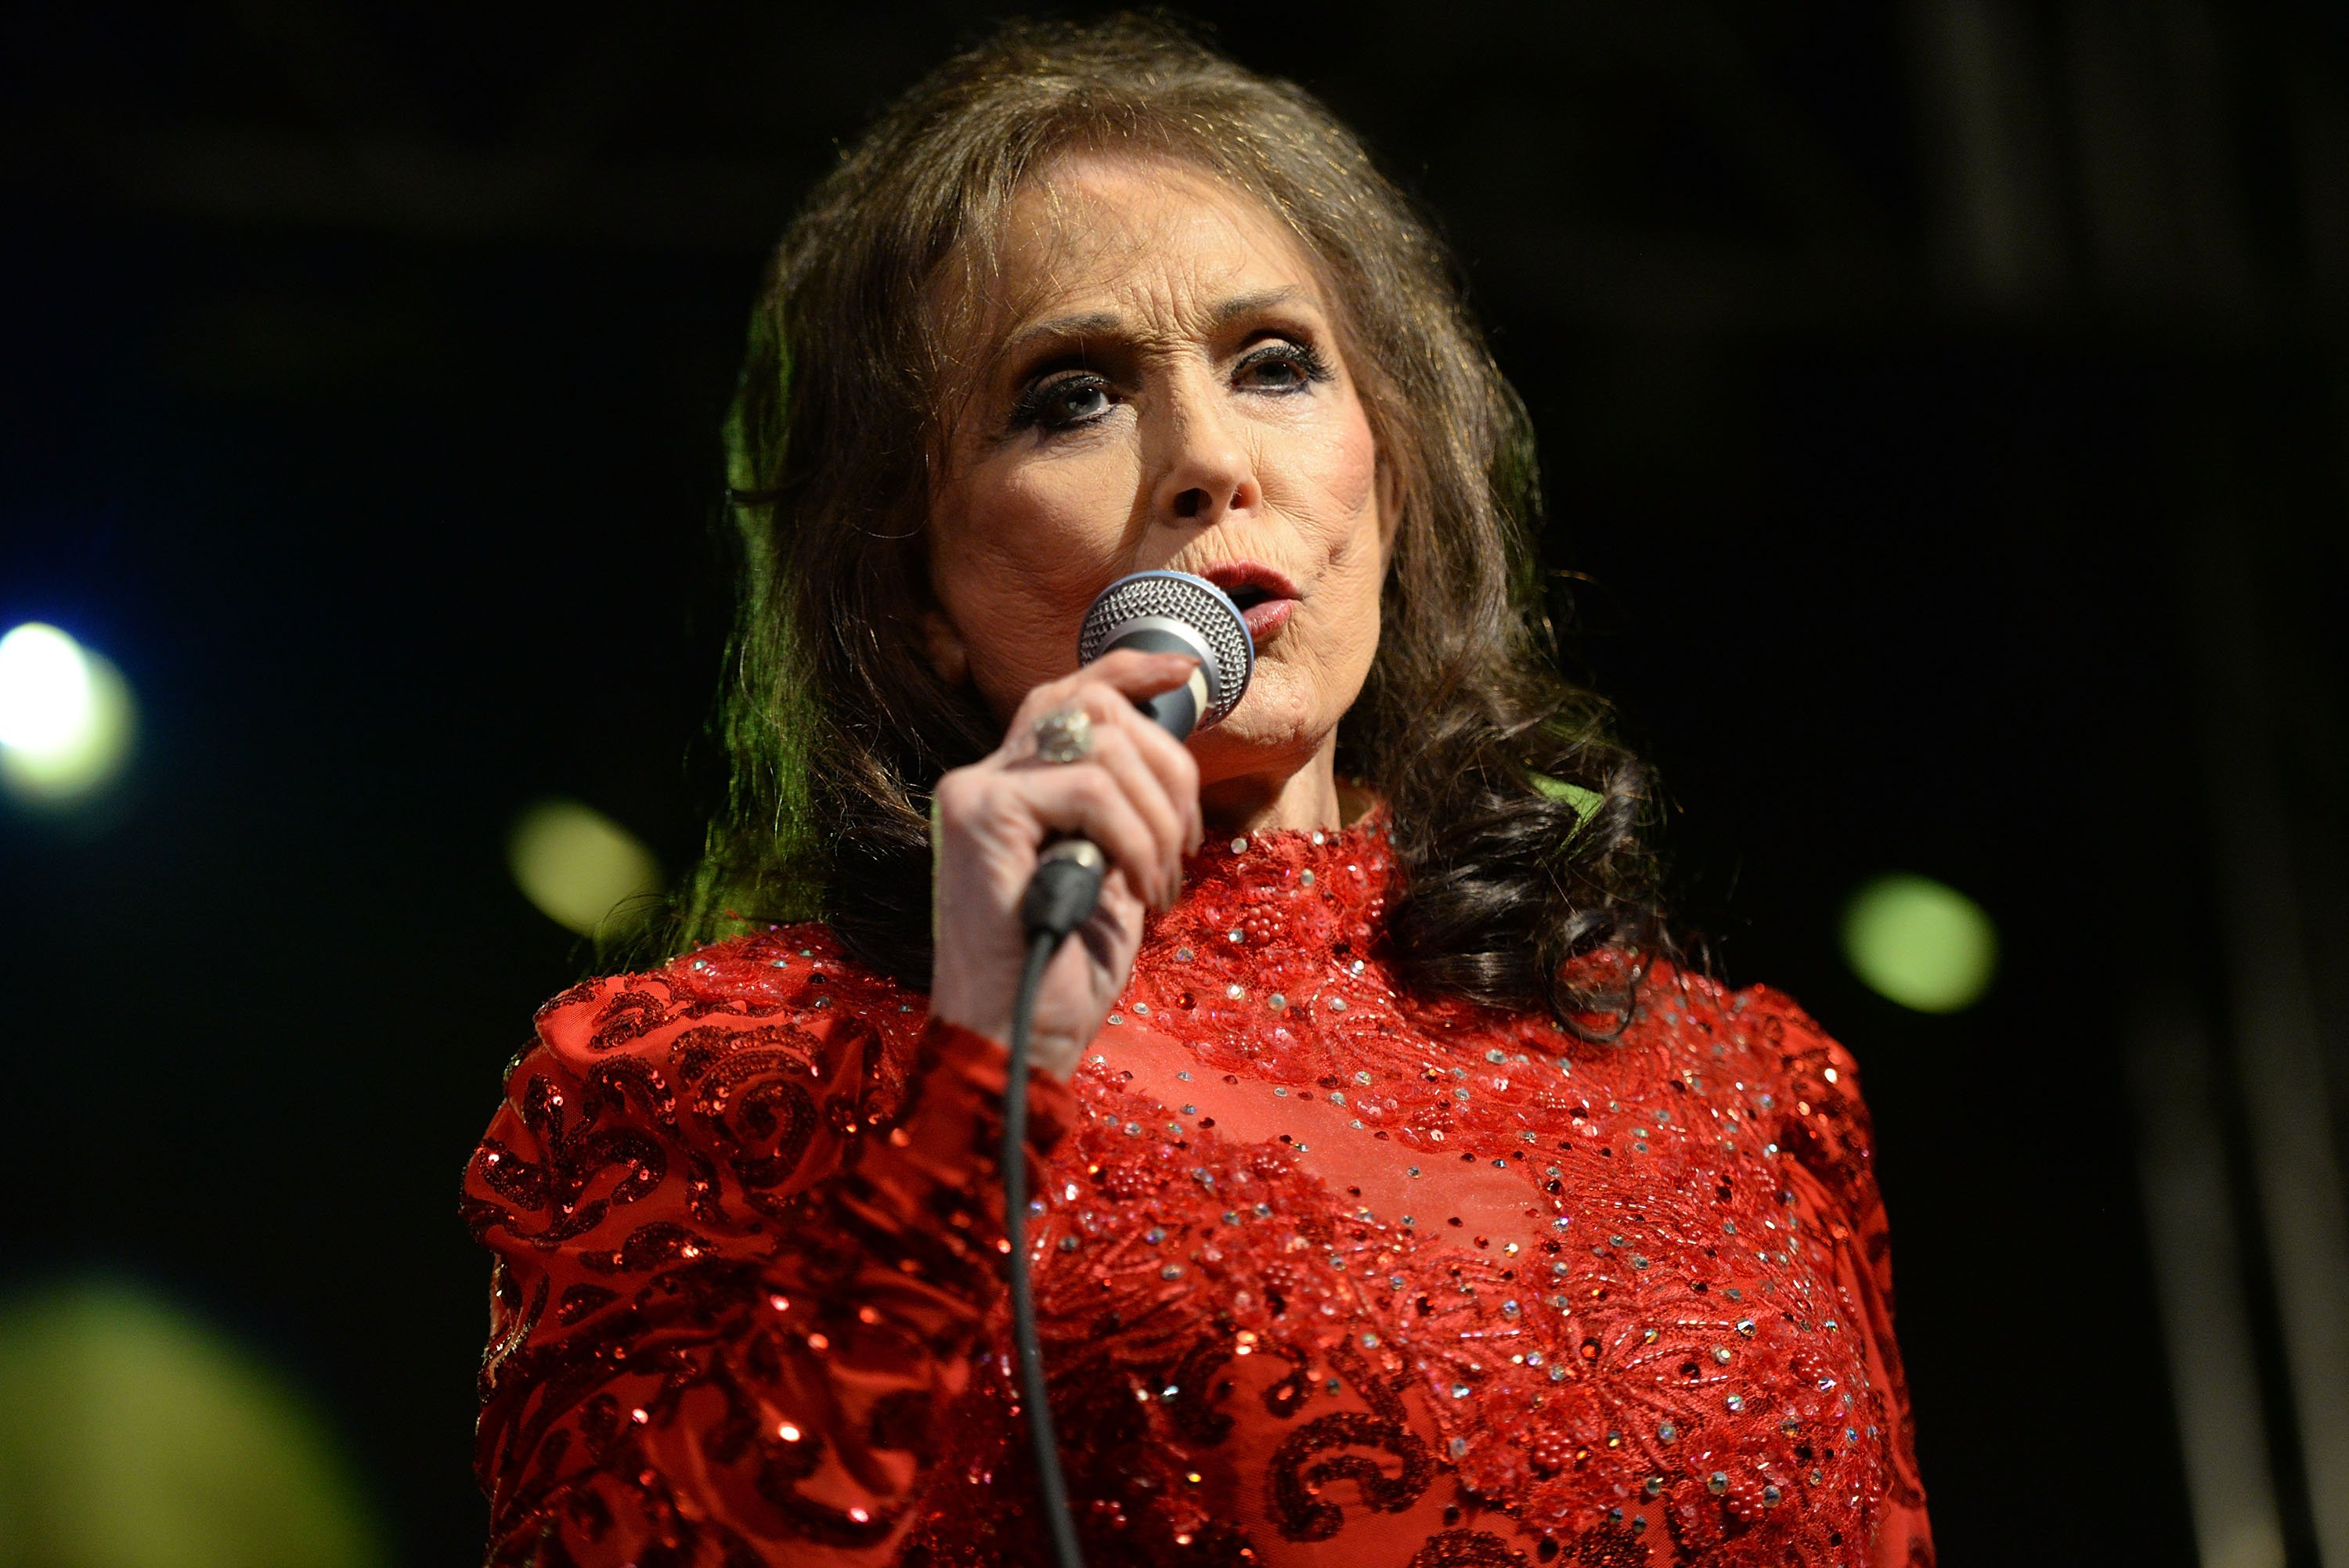 Loretta Lynn pictured performing at Stubbs on March 17, 2016 in Austin, Texas. | Photo: Getty Images